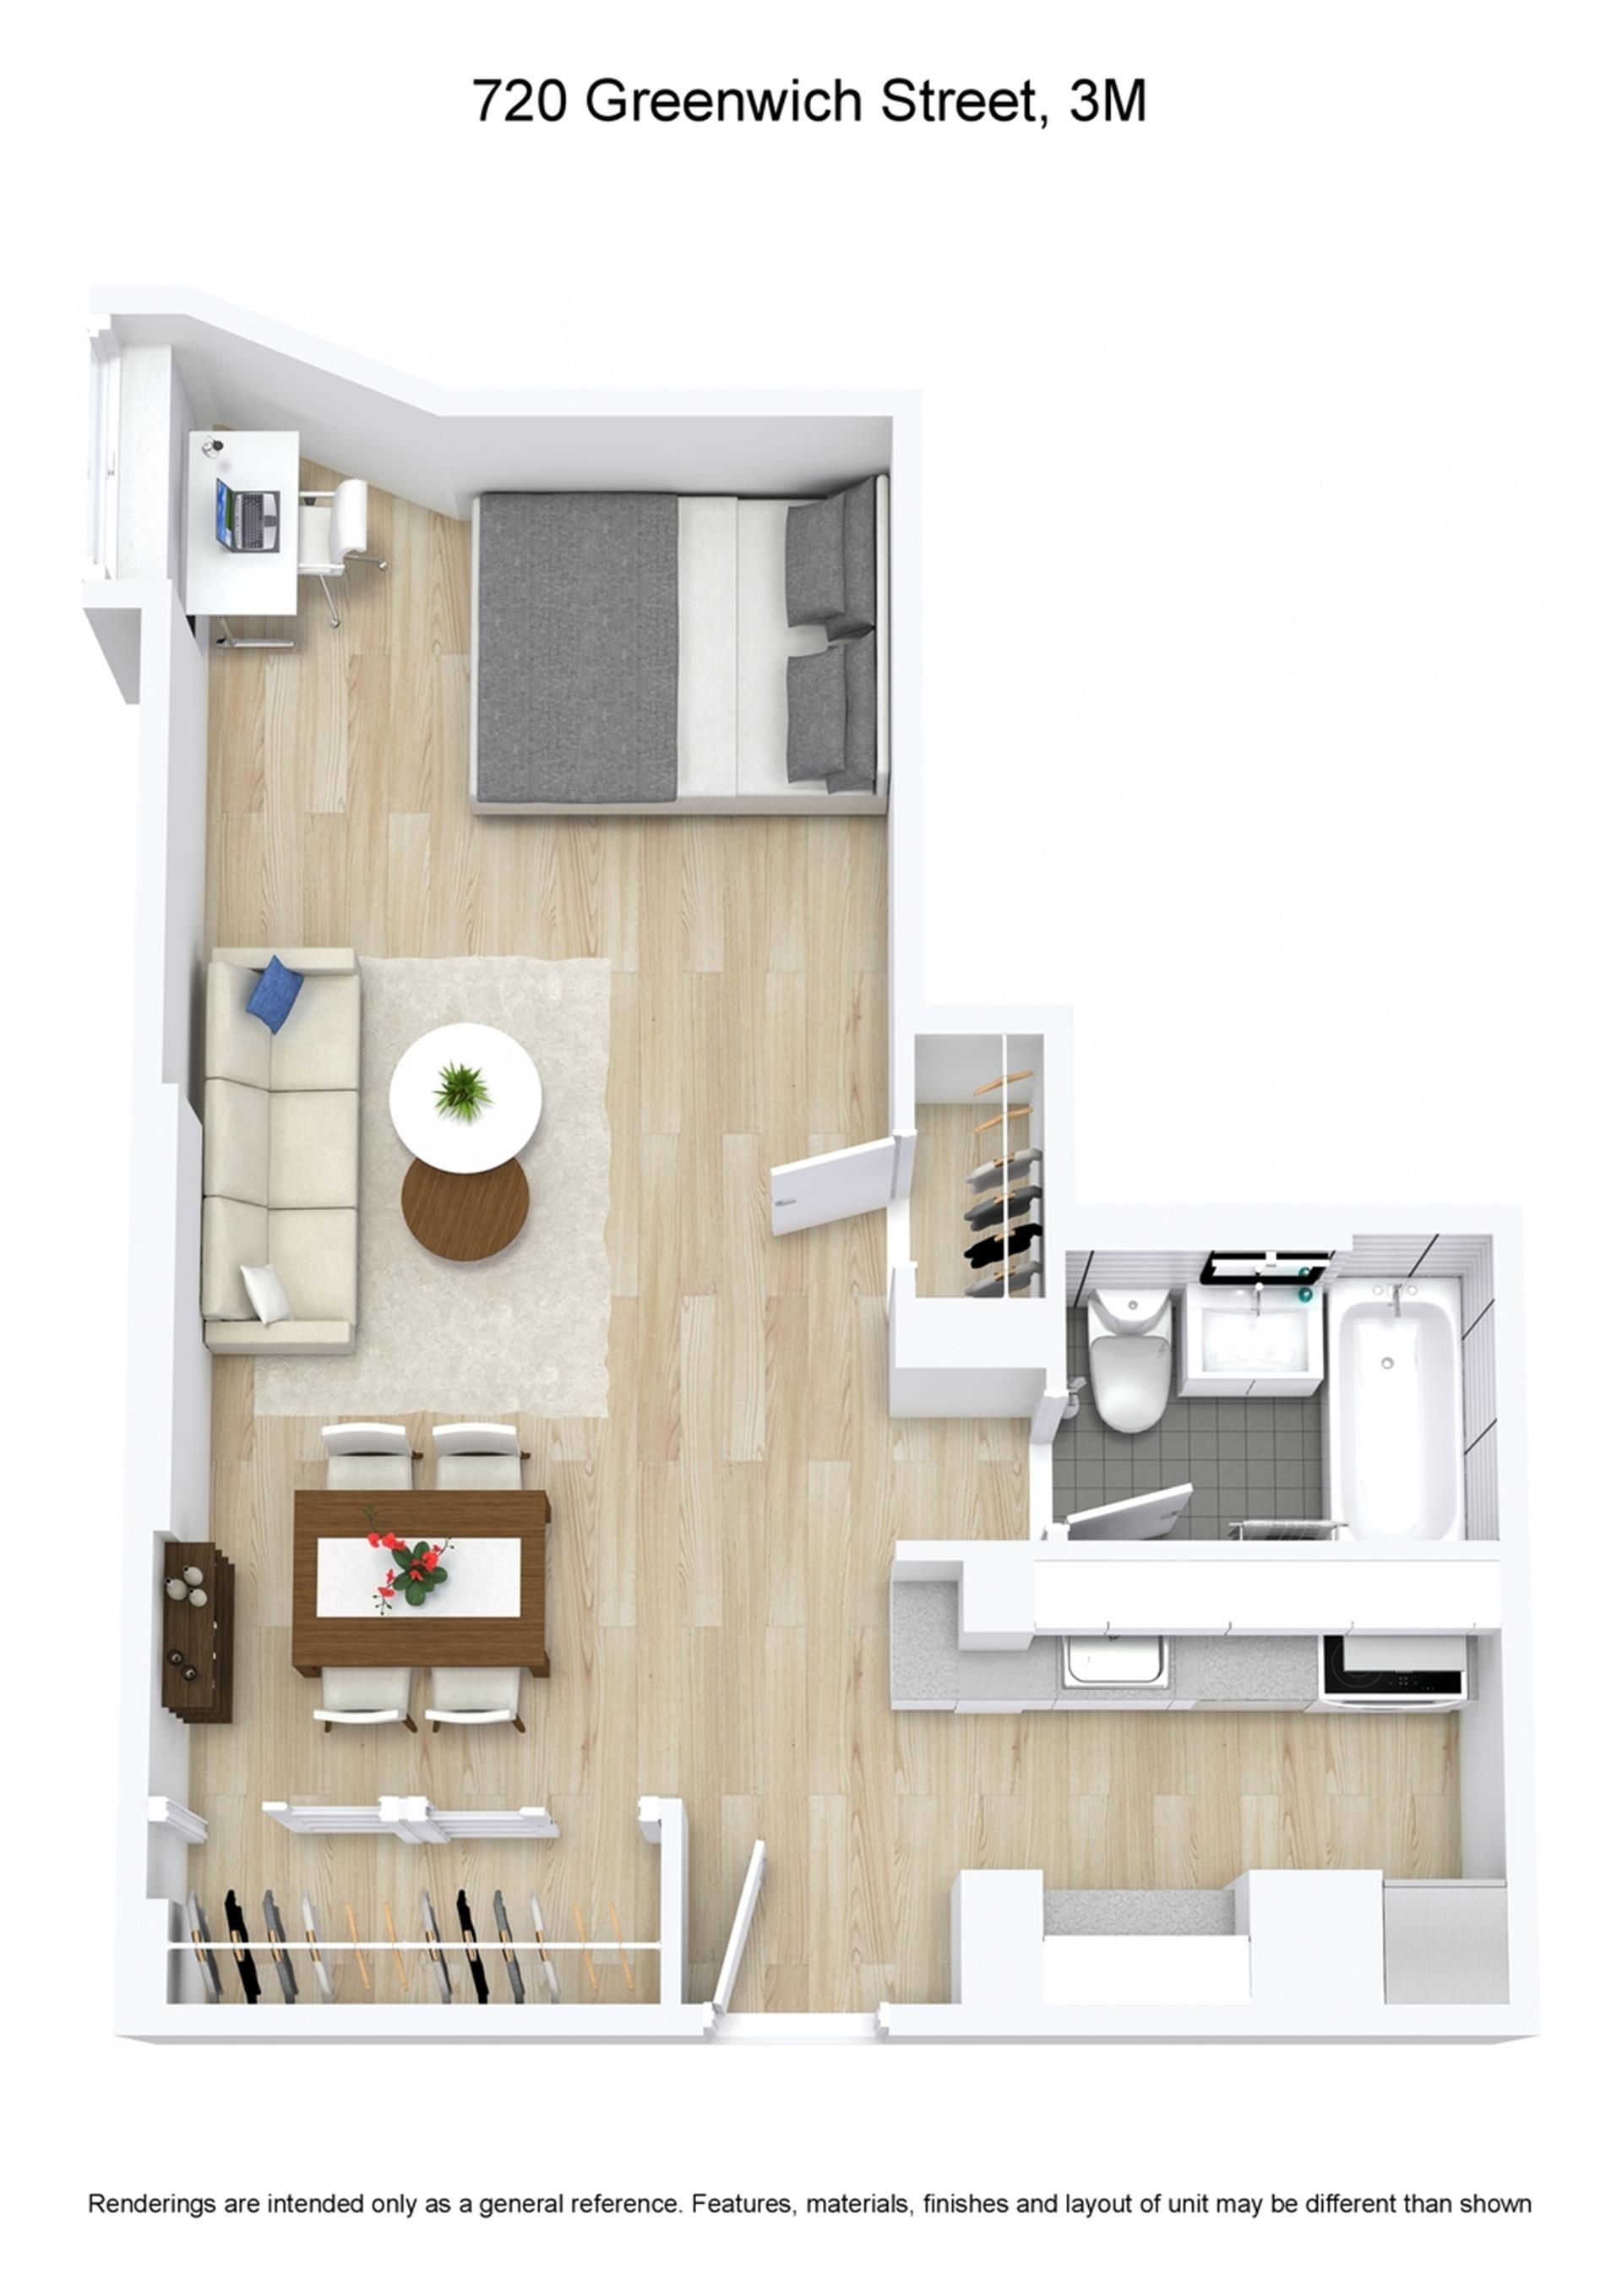 Floor plan of 720 Greenwich St, 3M - West Village - Meatpacking District, New York